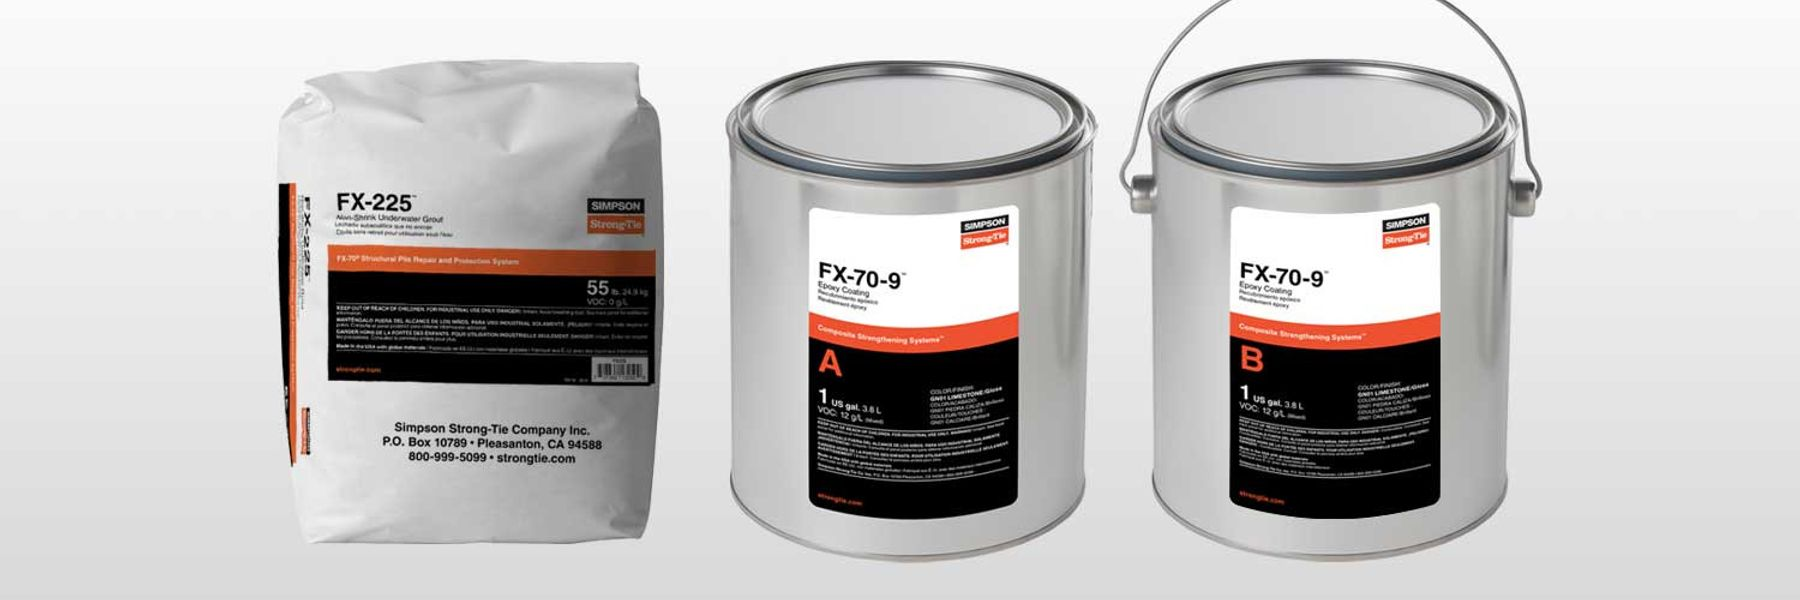 High-Strength Grouting Materials